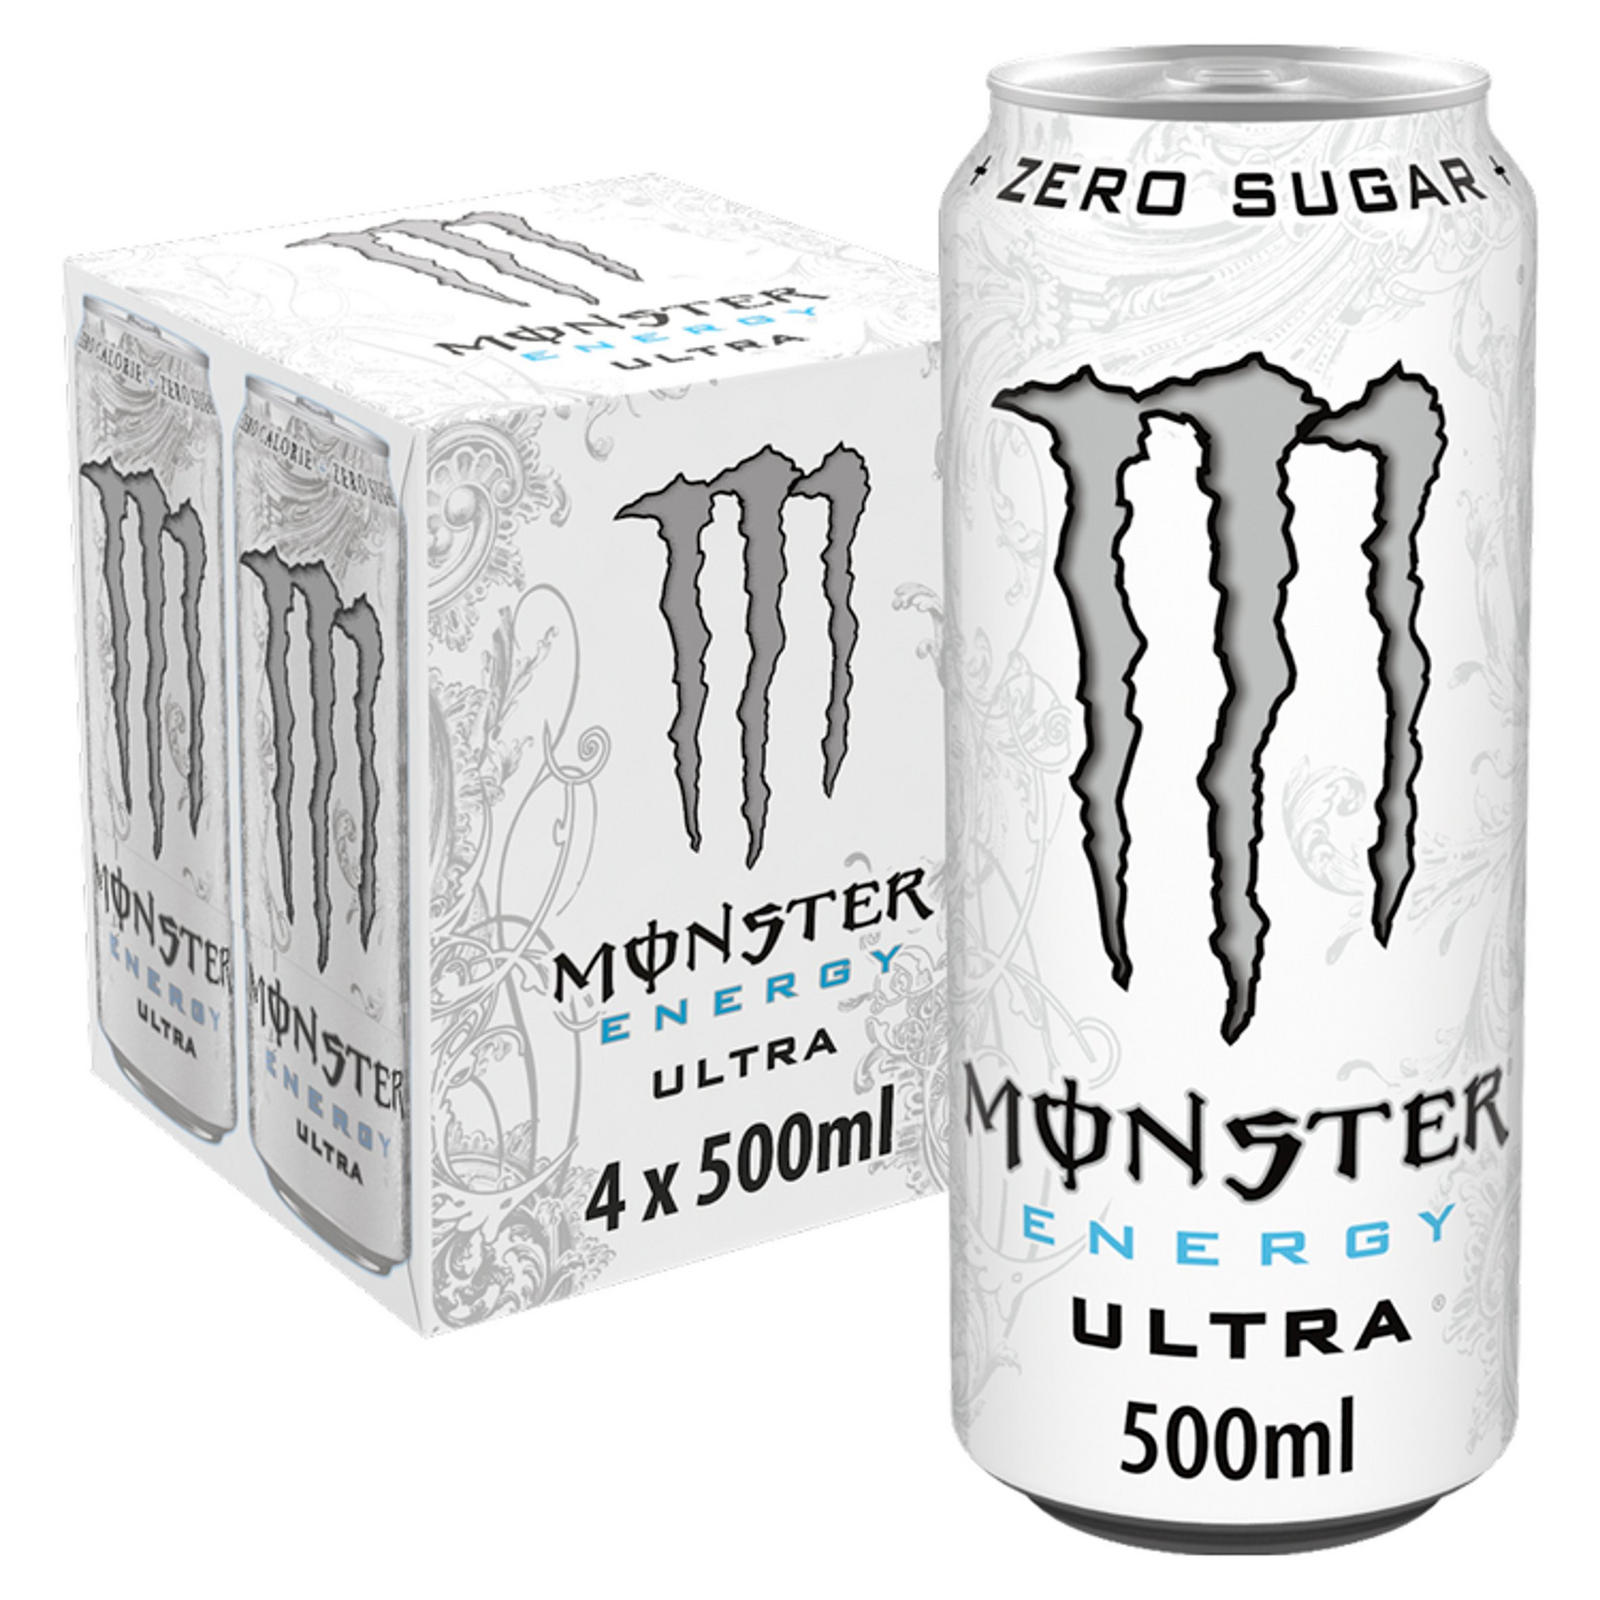 Advantages Of Energy Drinks & Dangers When Combined With Alcohol